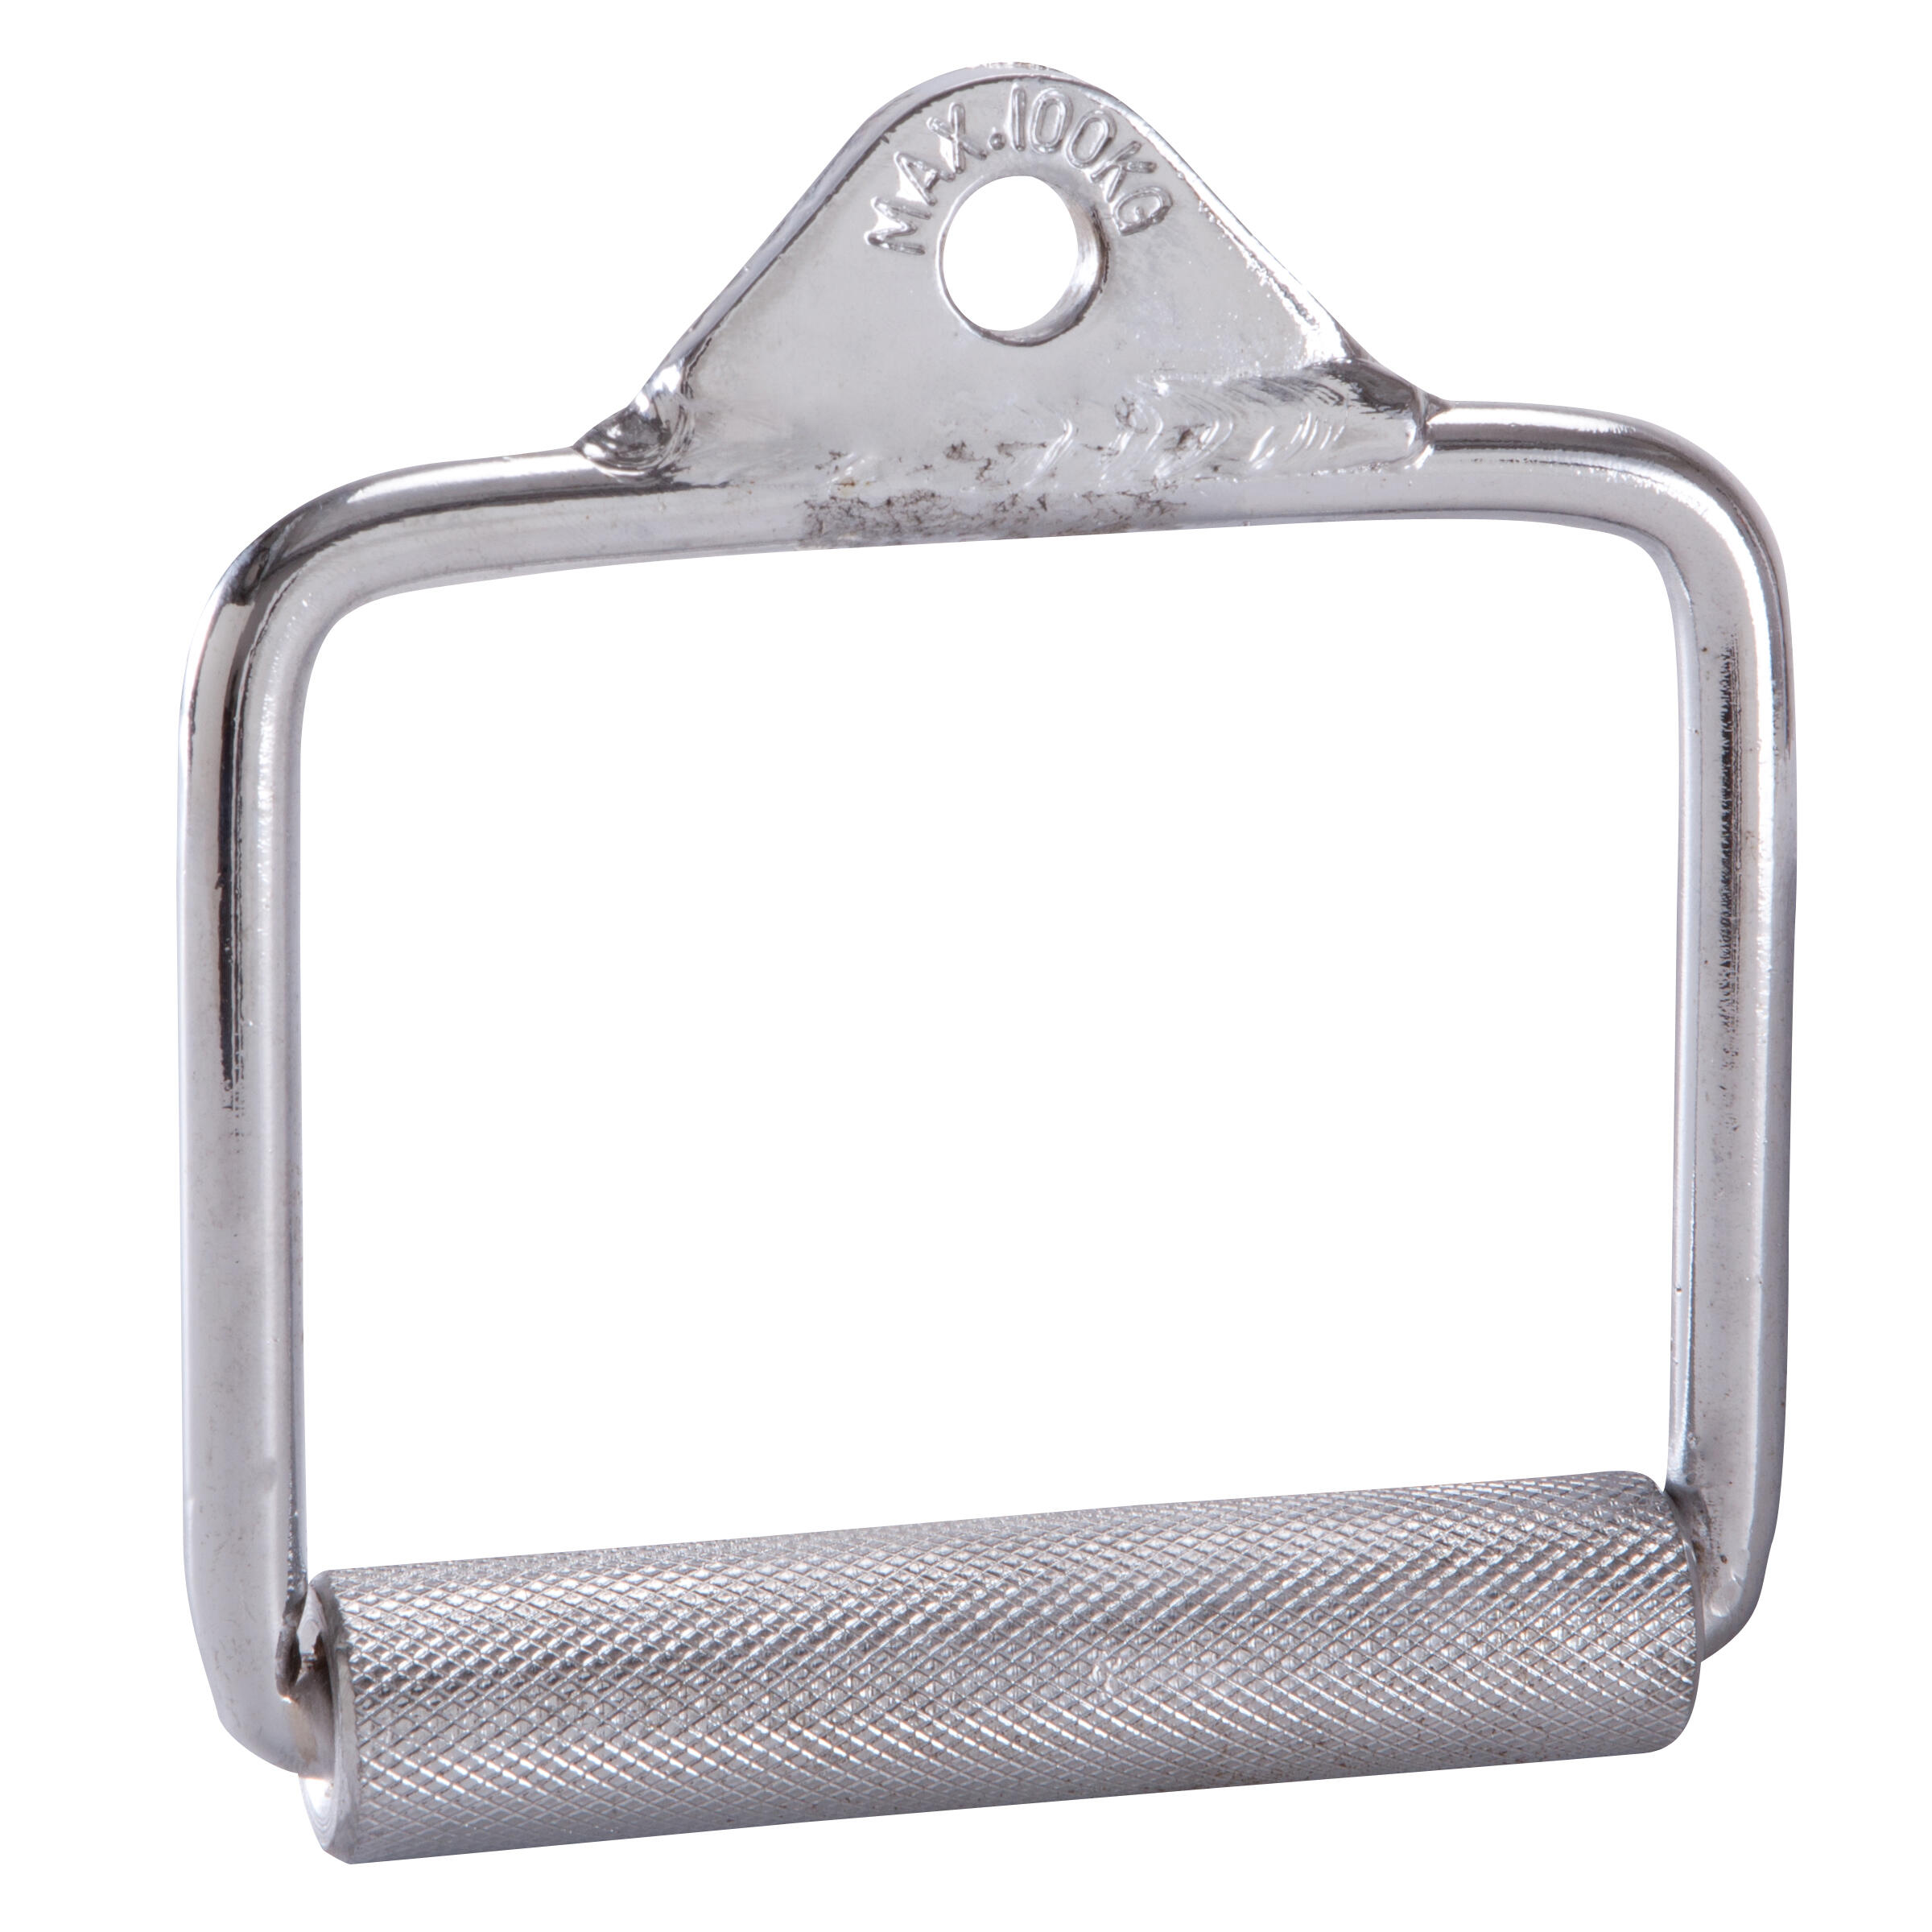 INTERIOR REPLACEMENT MIRROR STANDARD GLASS SUCTION FITTING LEARNER INSTRUCTOR